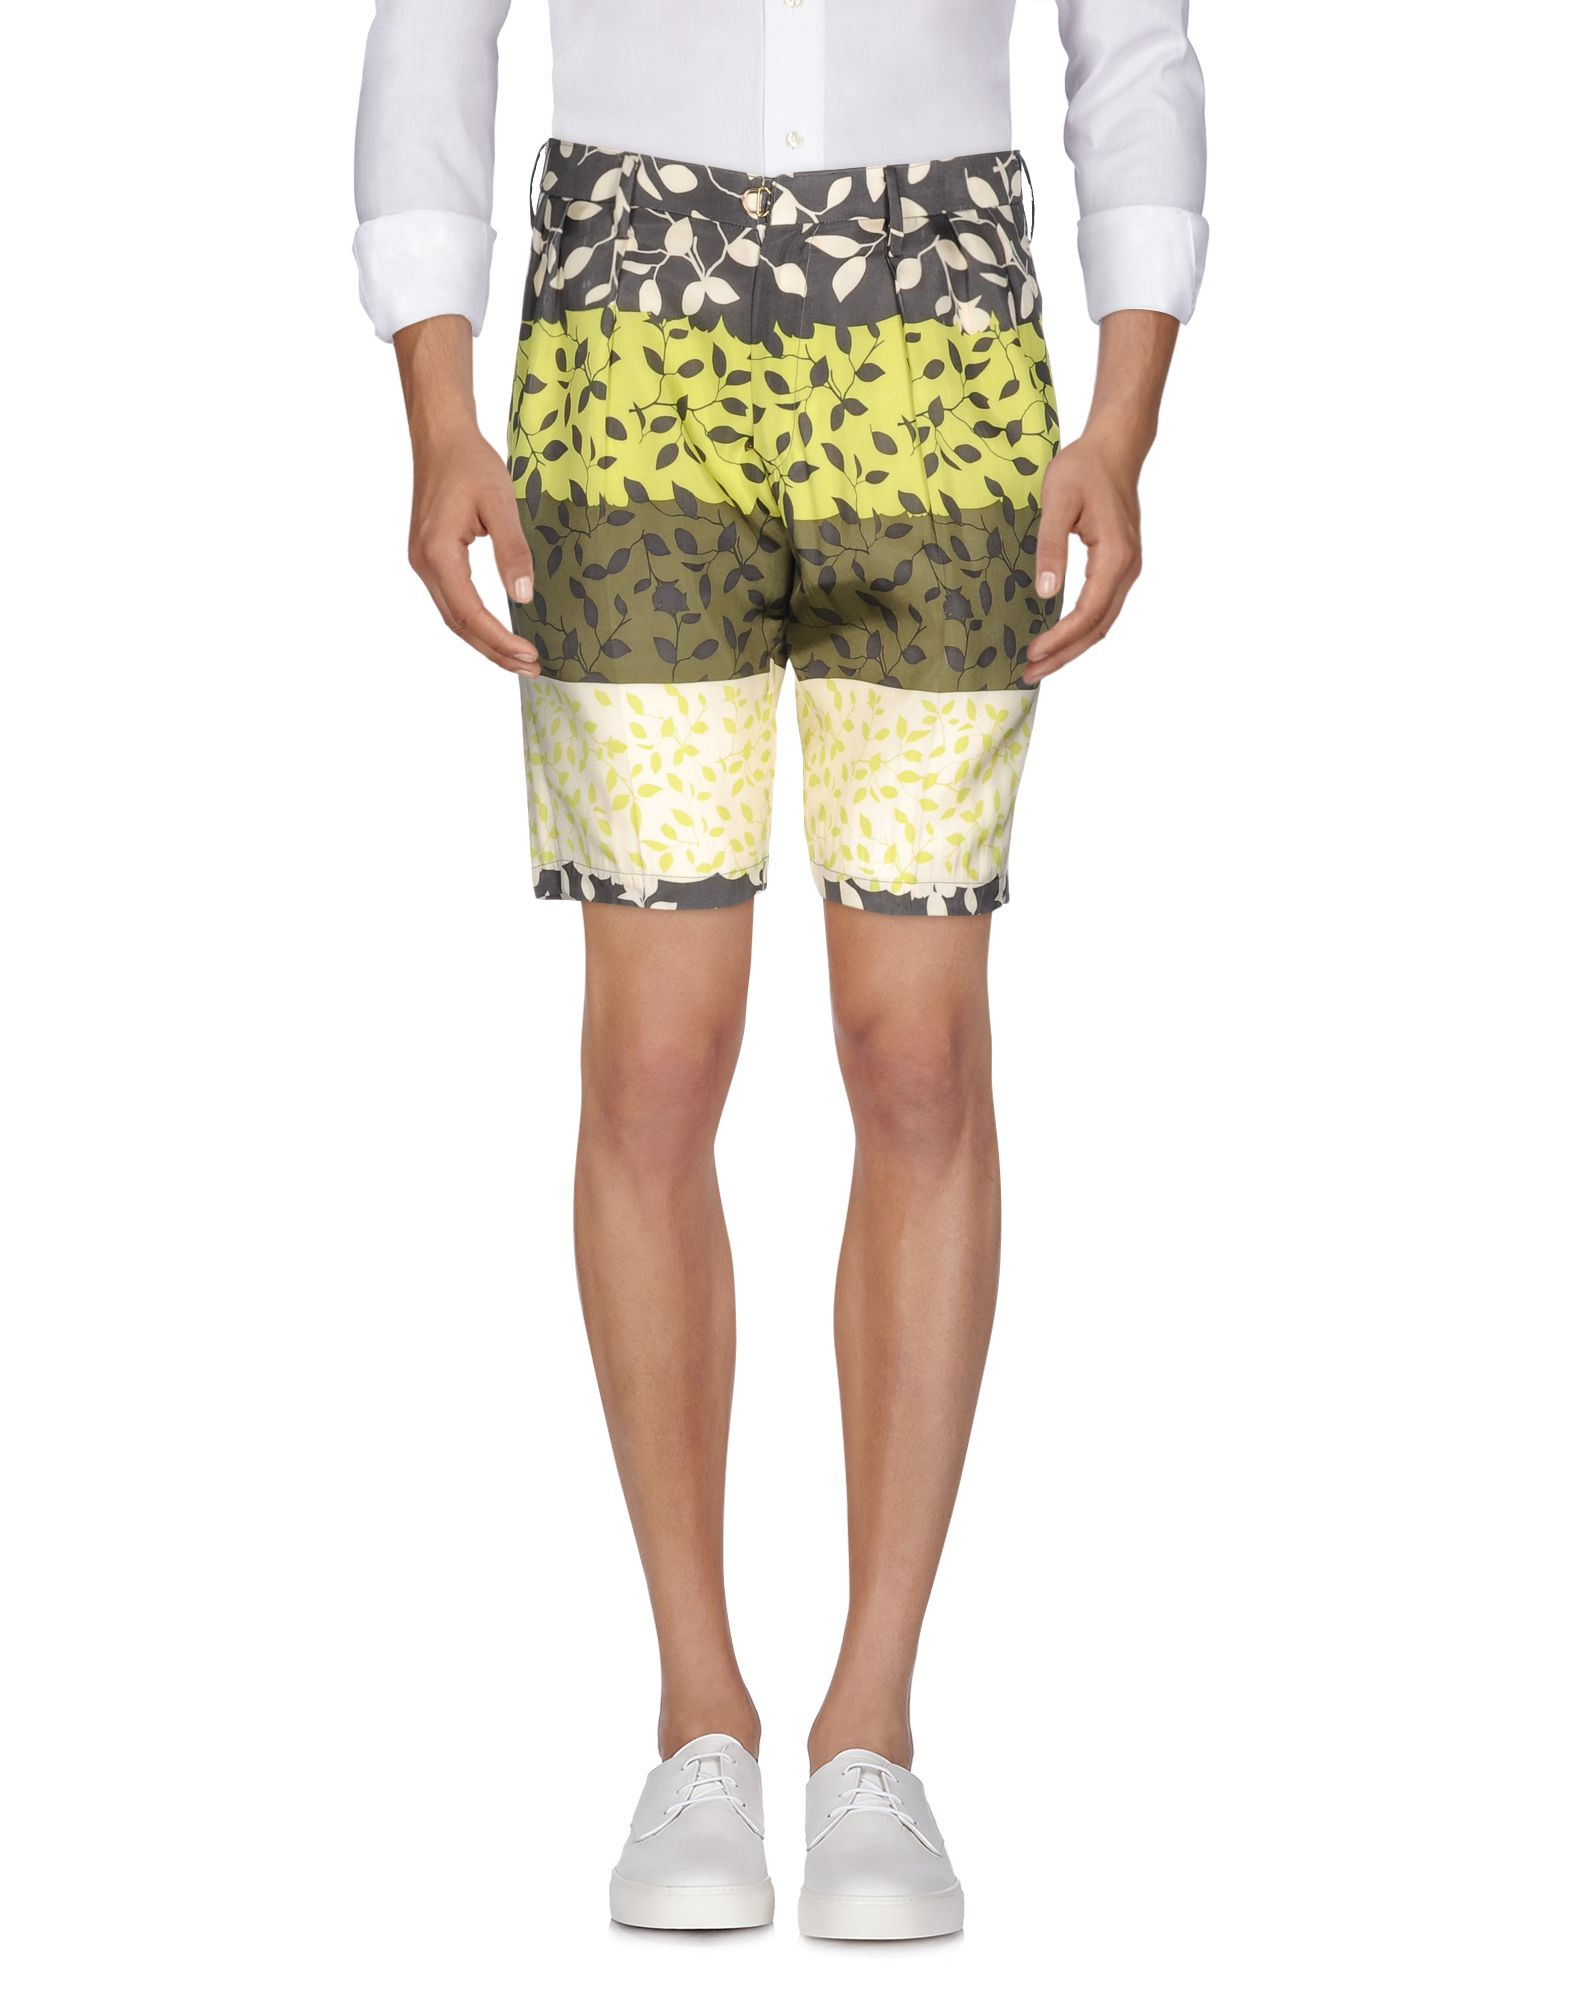 PATCHY CAKE EATER Bermudas in Green